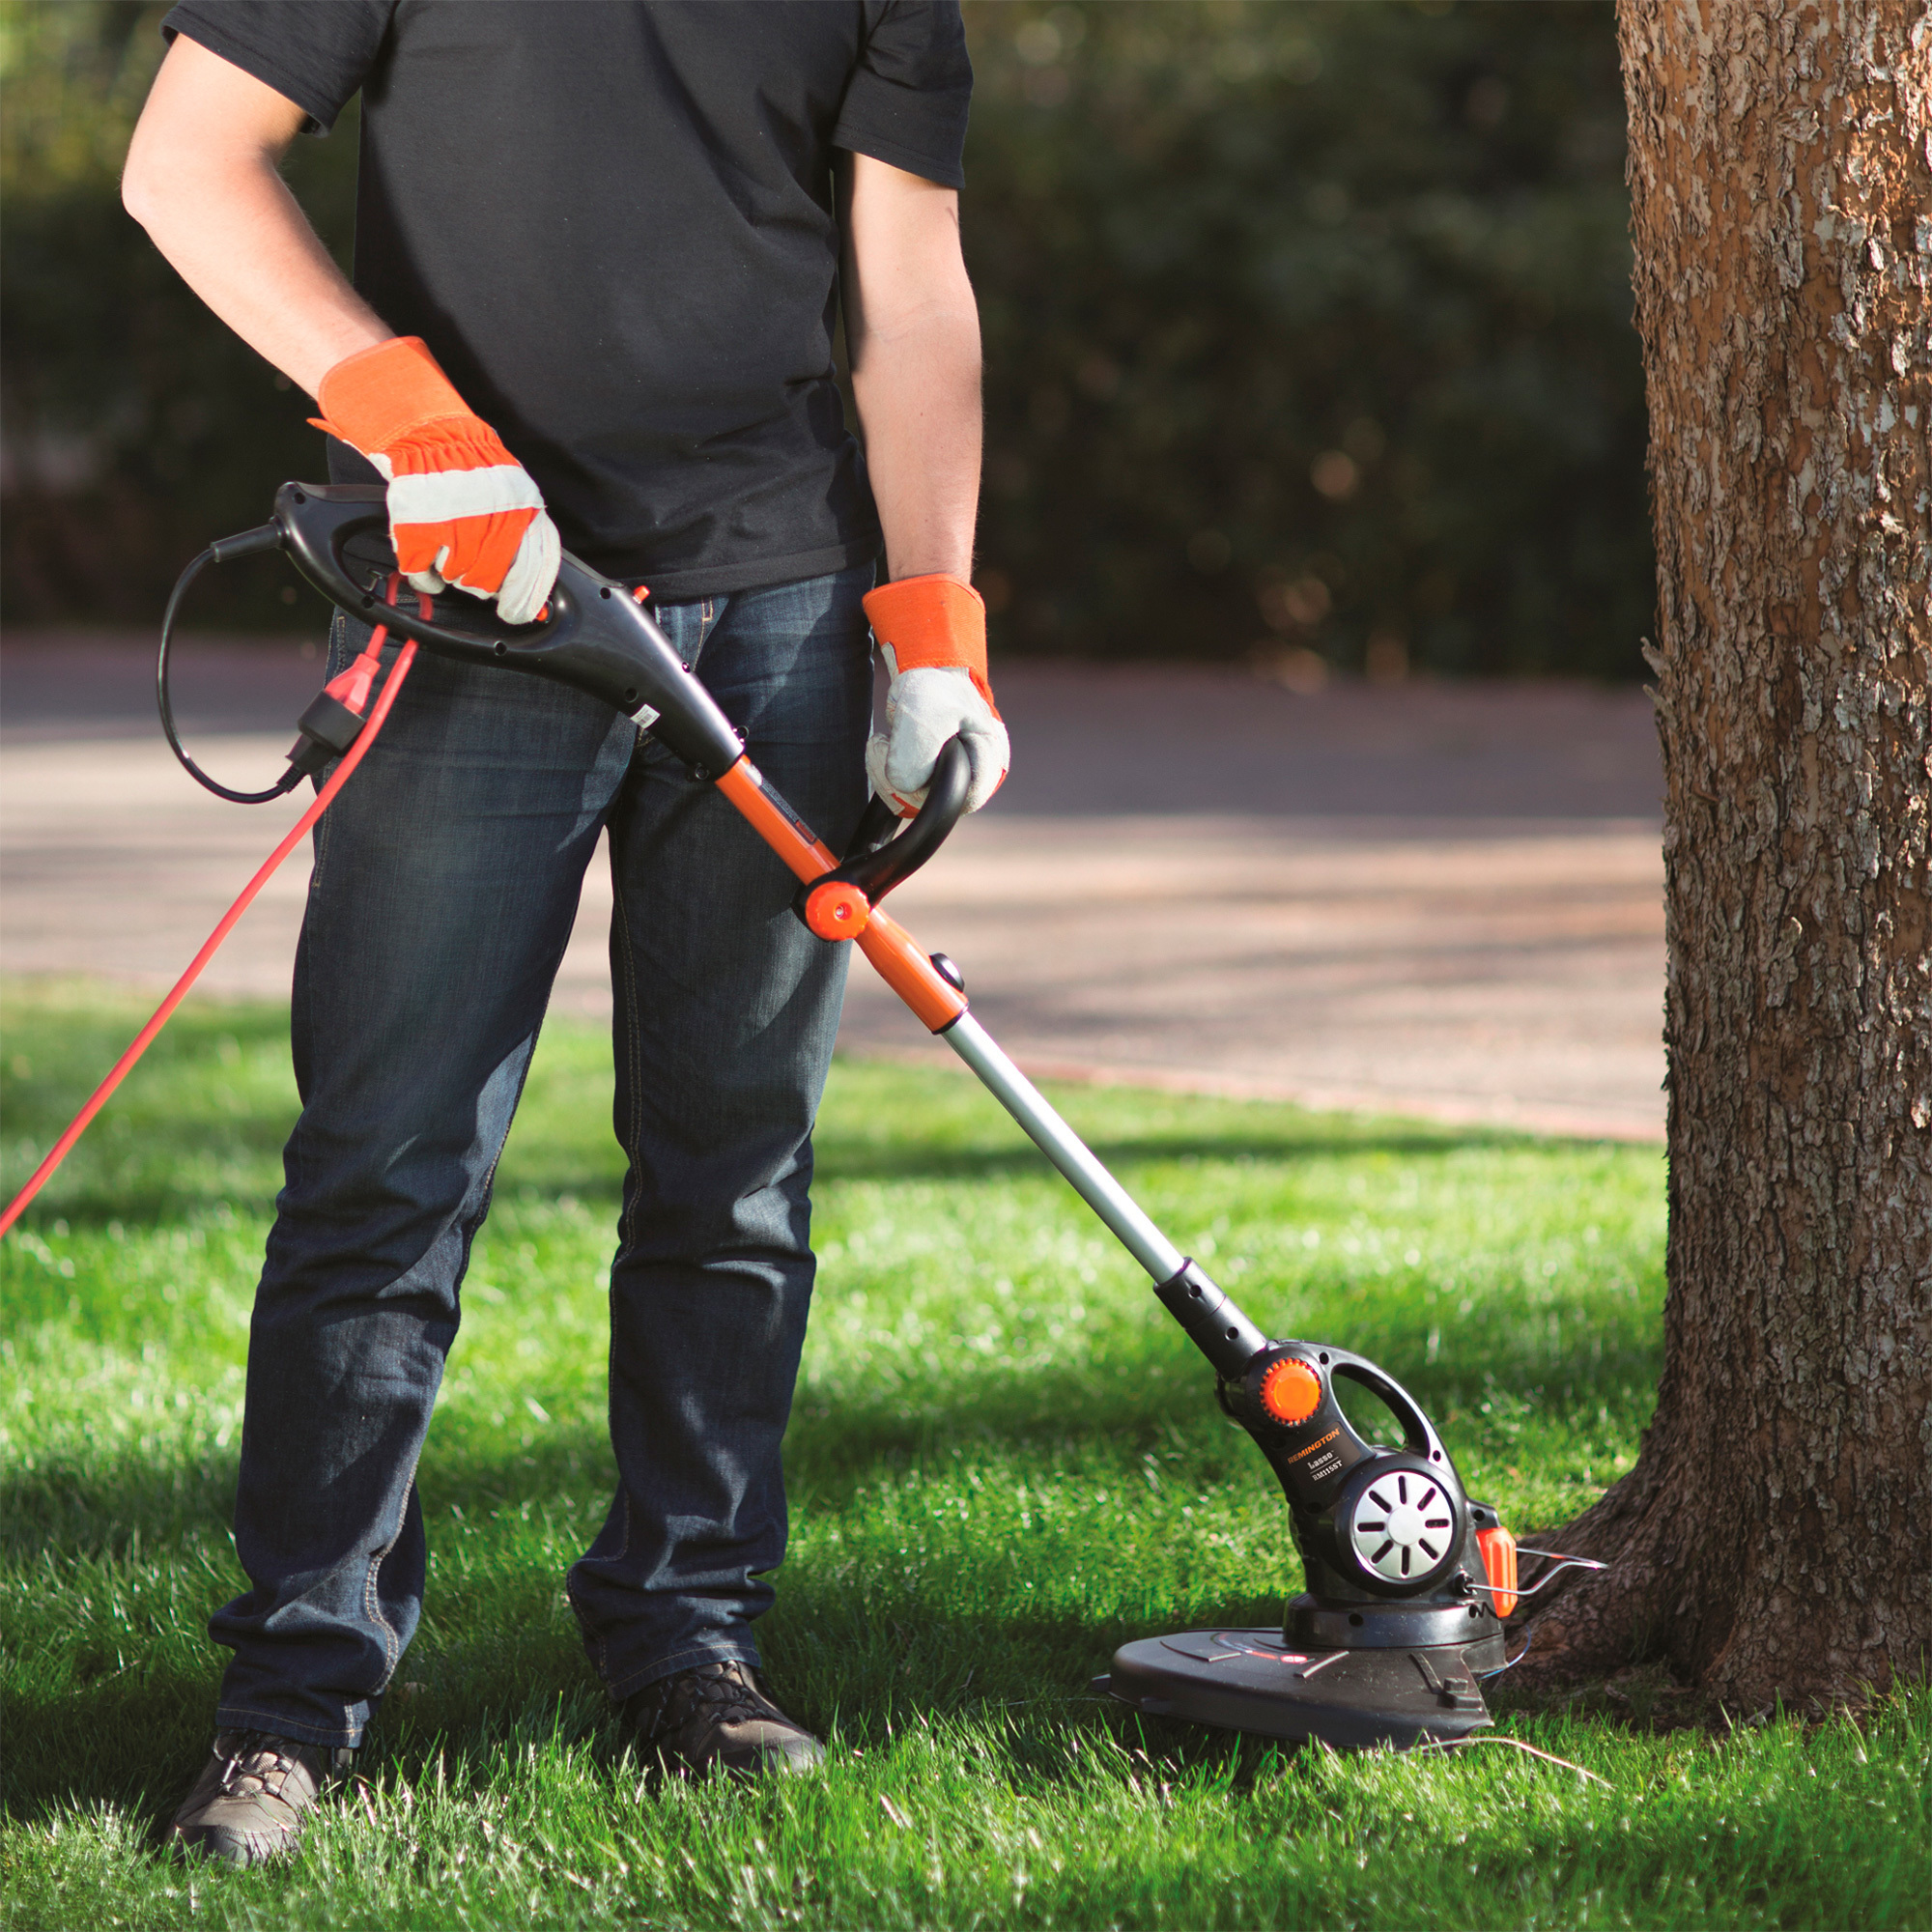 Straight shaft string trimmer attachment